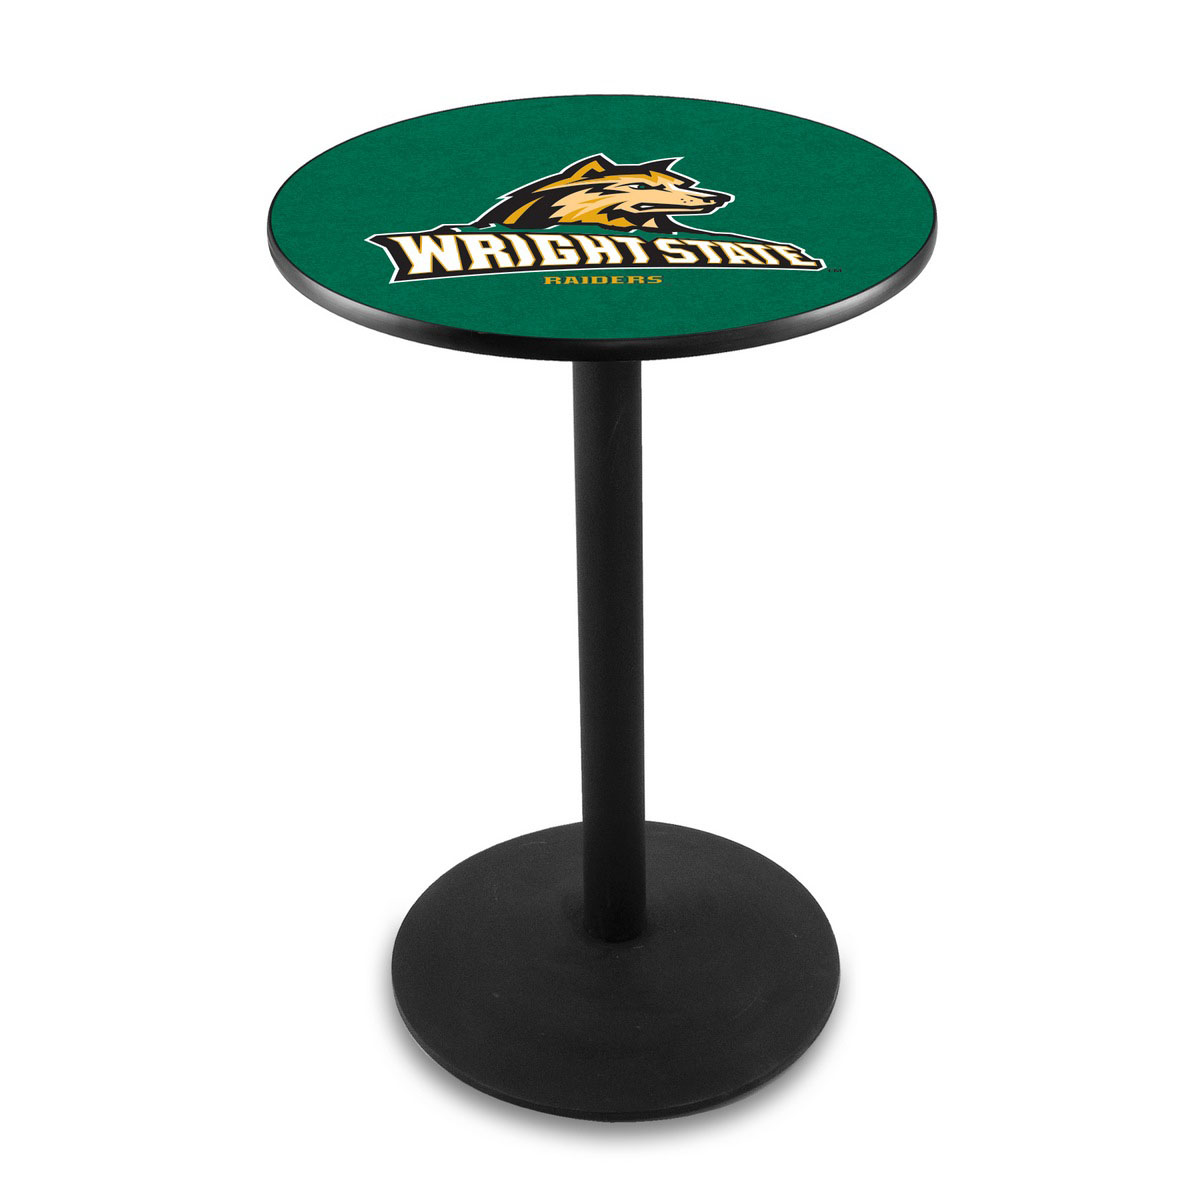 Design Wright State University Logo Pub Bar Table Round Stand Product Photo